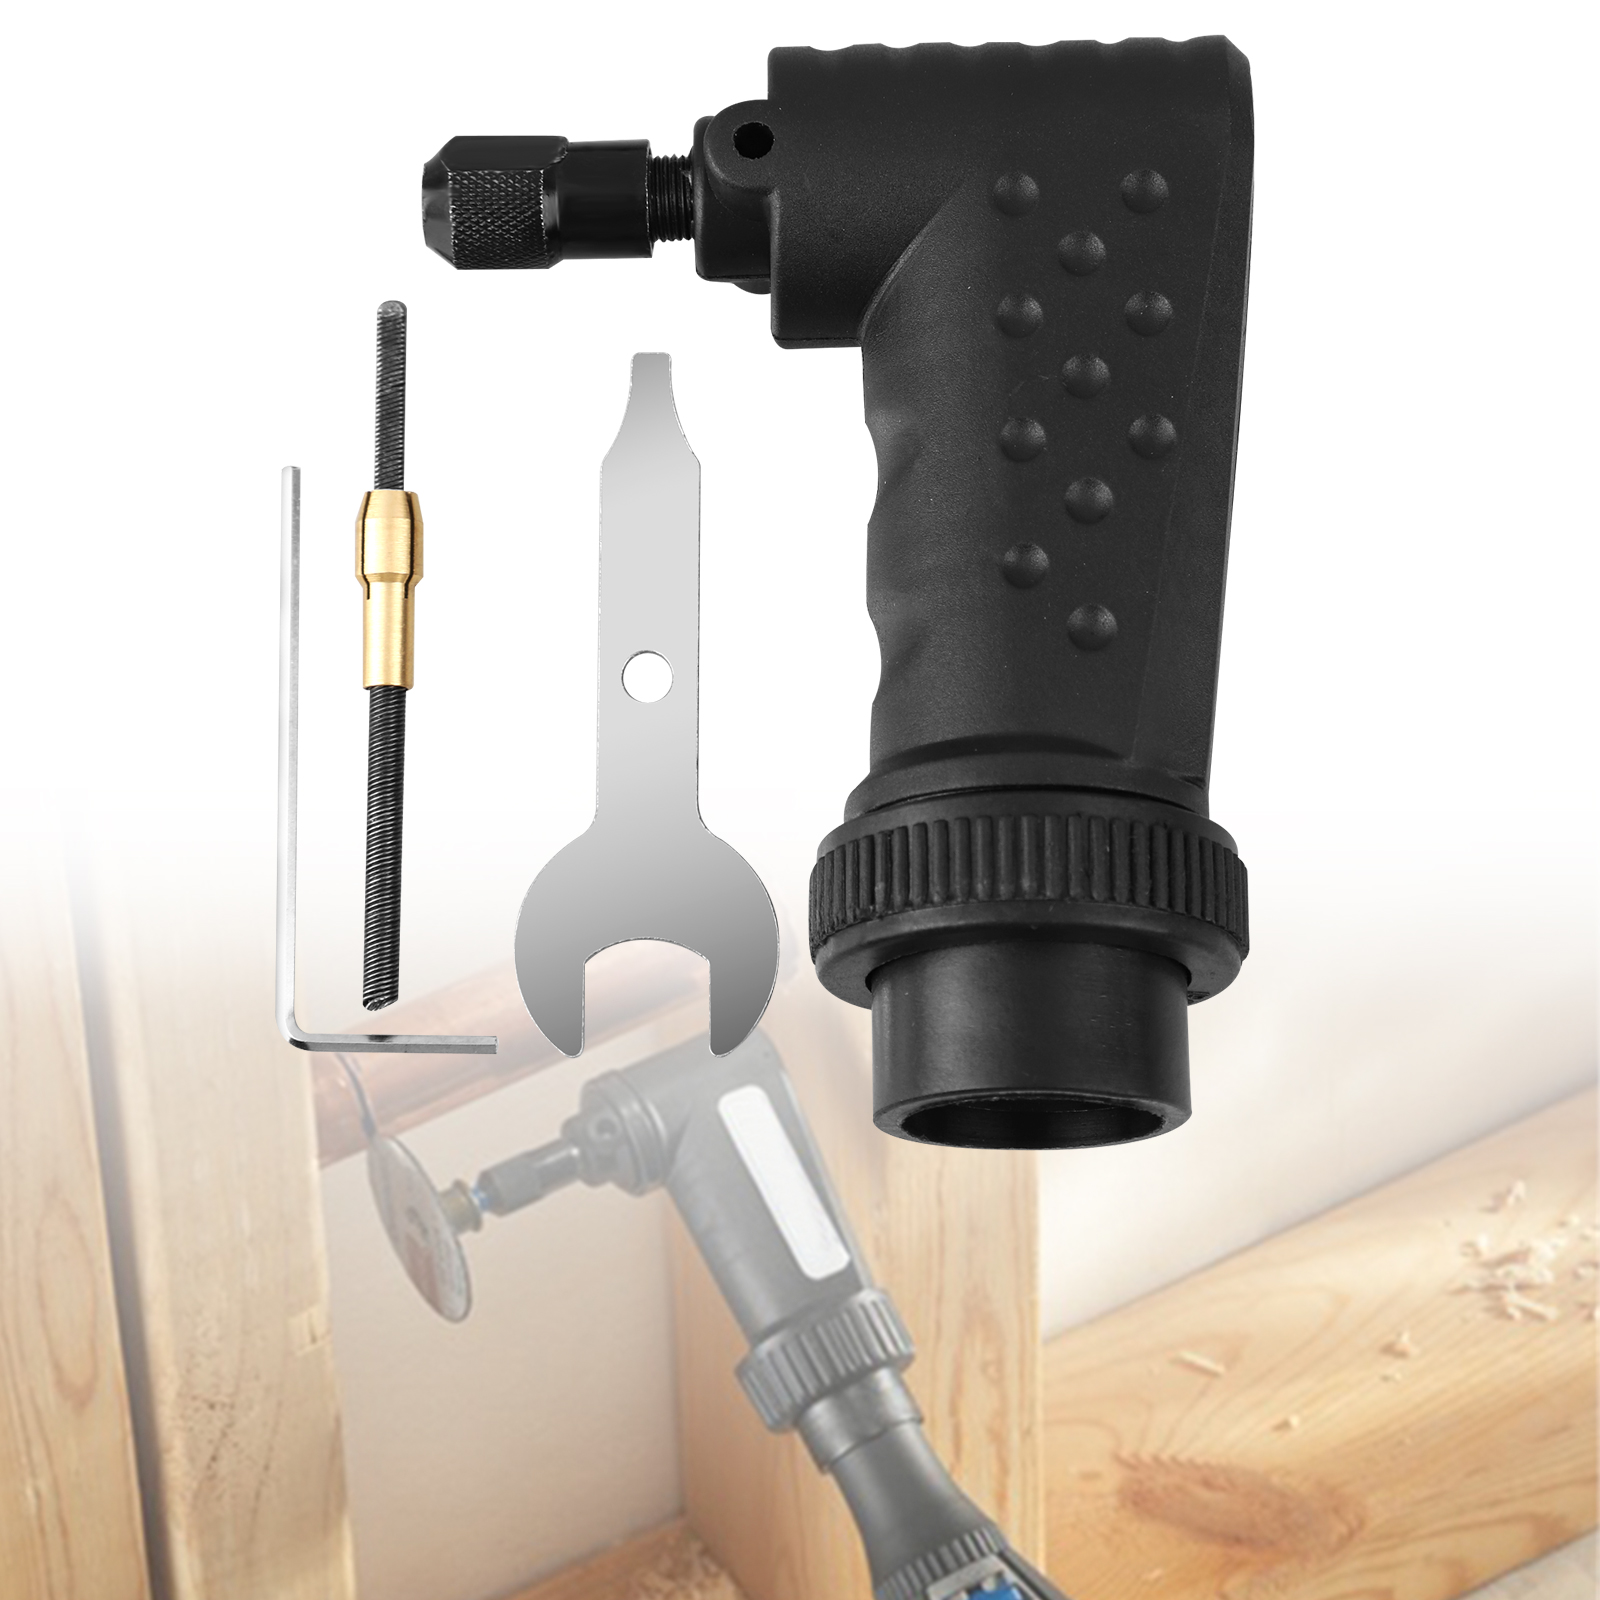 Right Angle Converter Cut Tool Adapter Attachment for Dremel